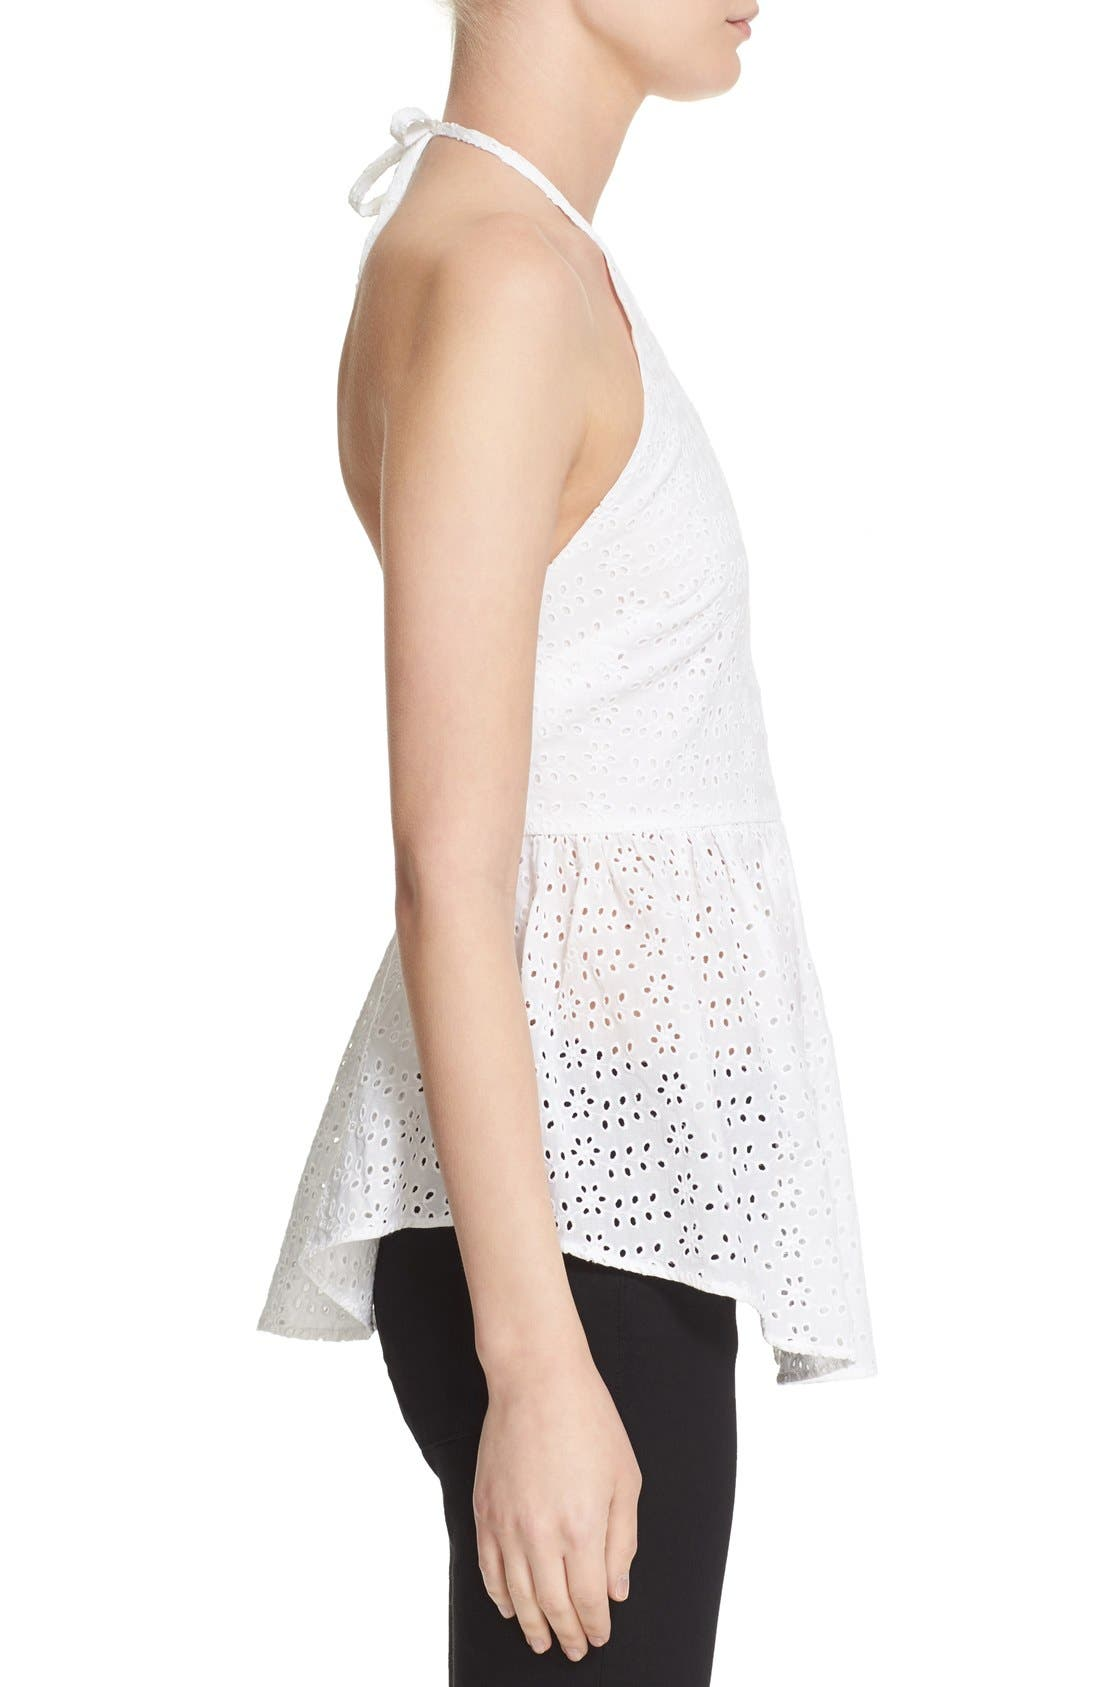 ELIZABETH AND JAMES, 'Perth' Eyelet Peplum Halter Top, Alternate thumbnail 4, color, 100